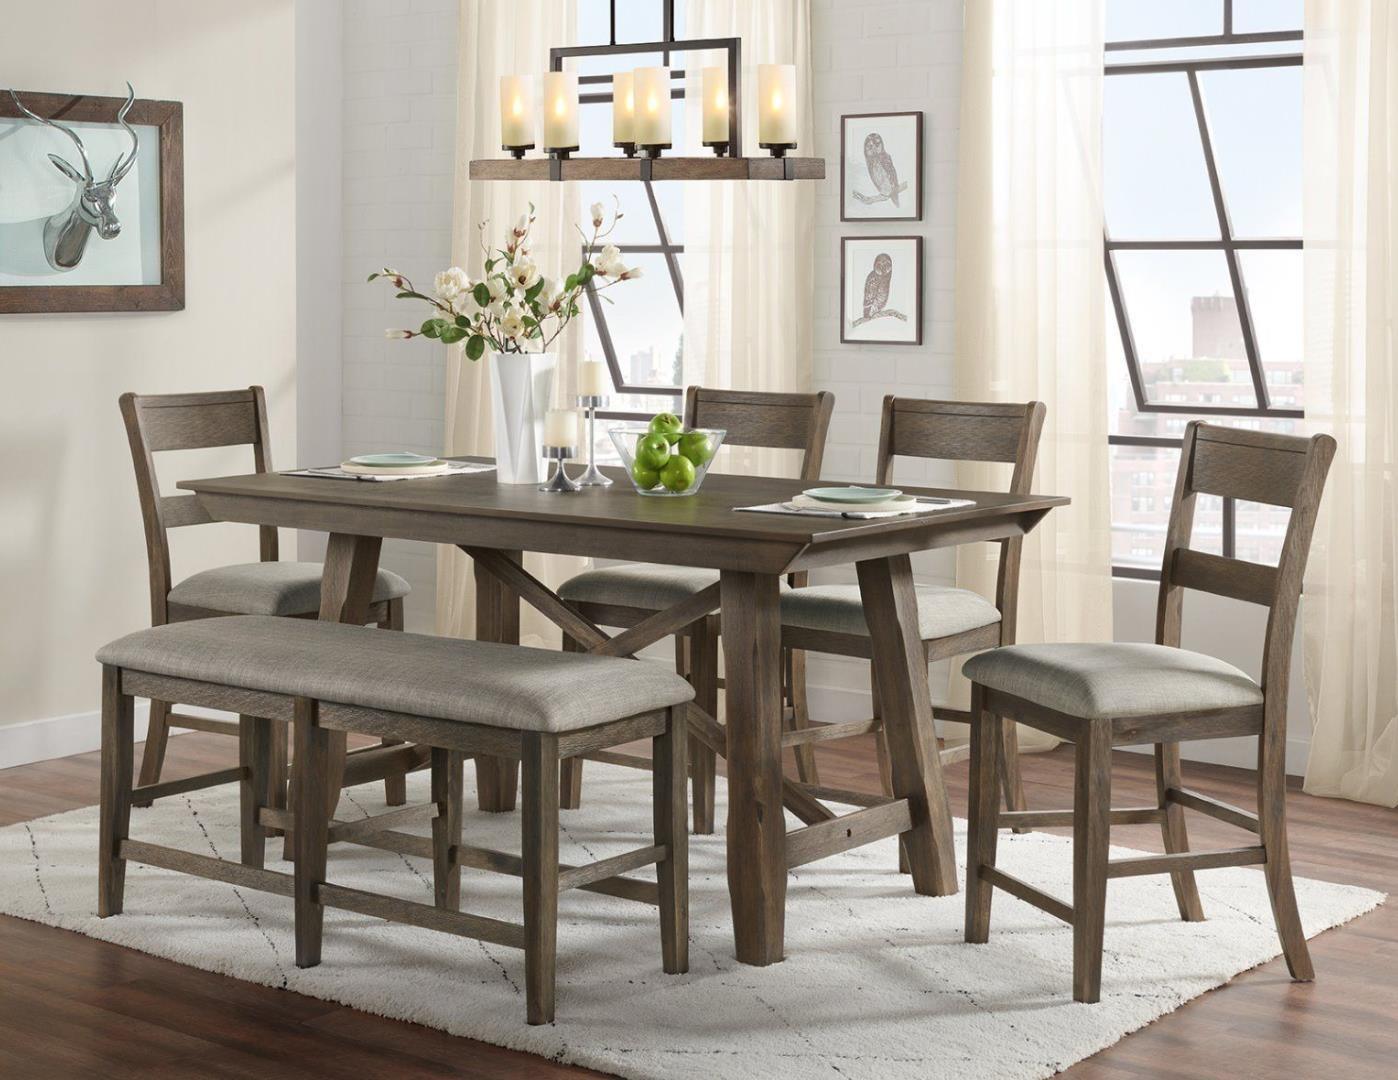 Vilo Dining  6-Piece Dining Set with Bench at Ruby Gordon Home